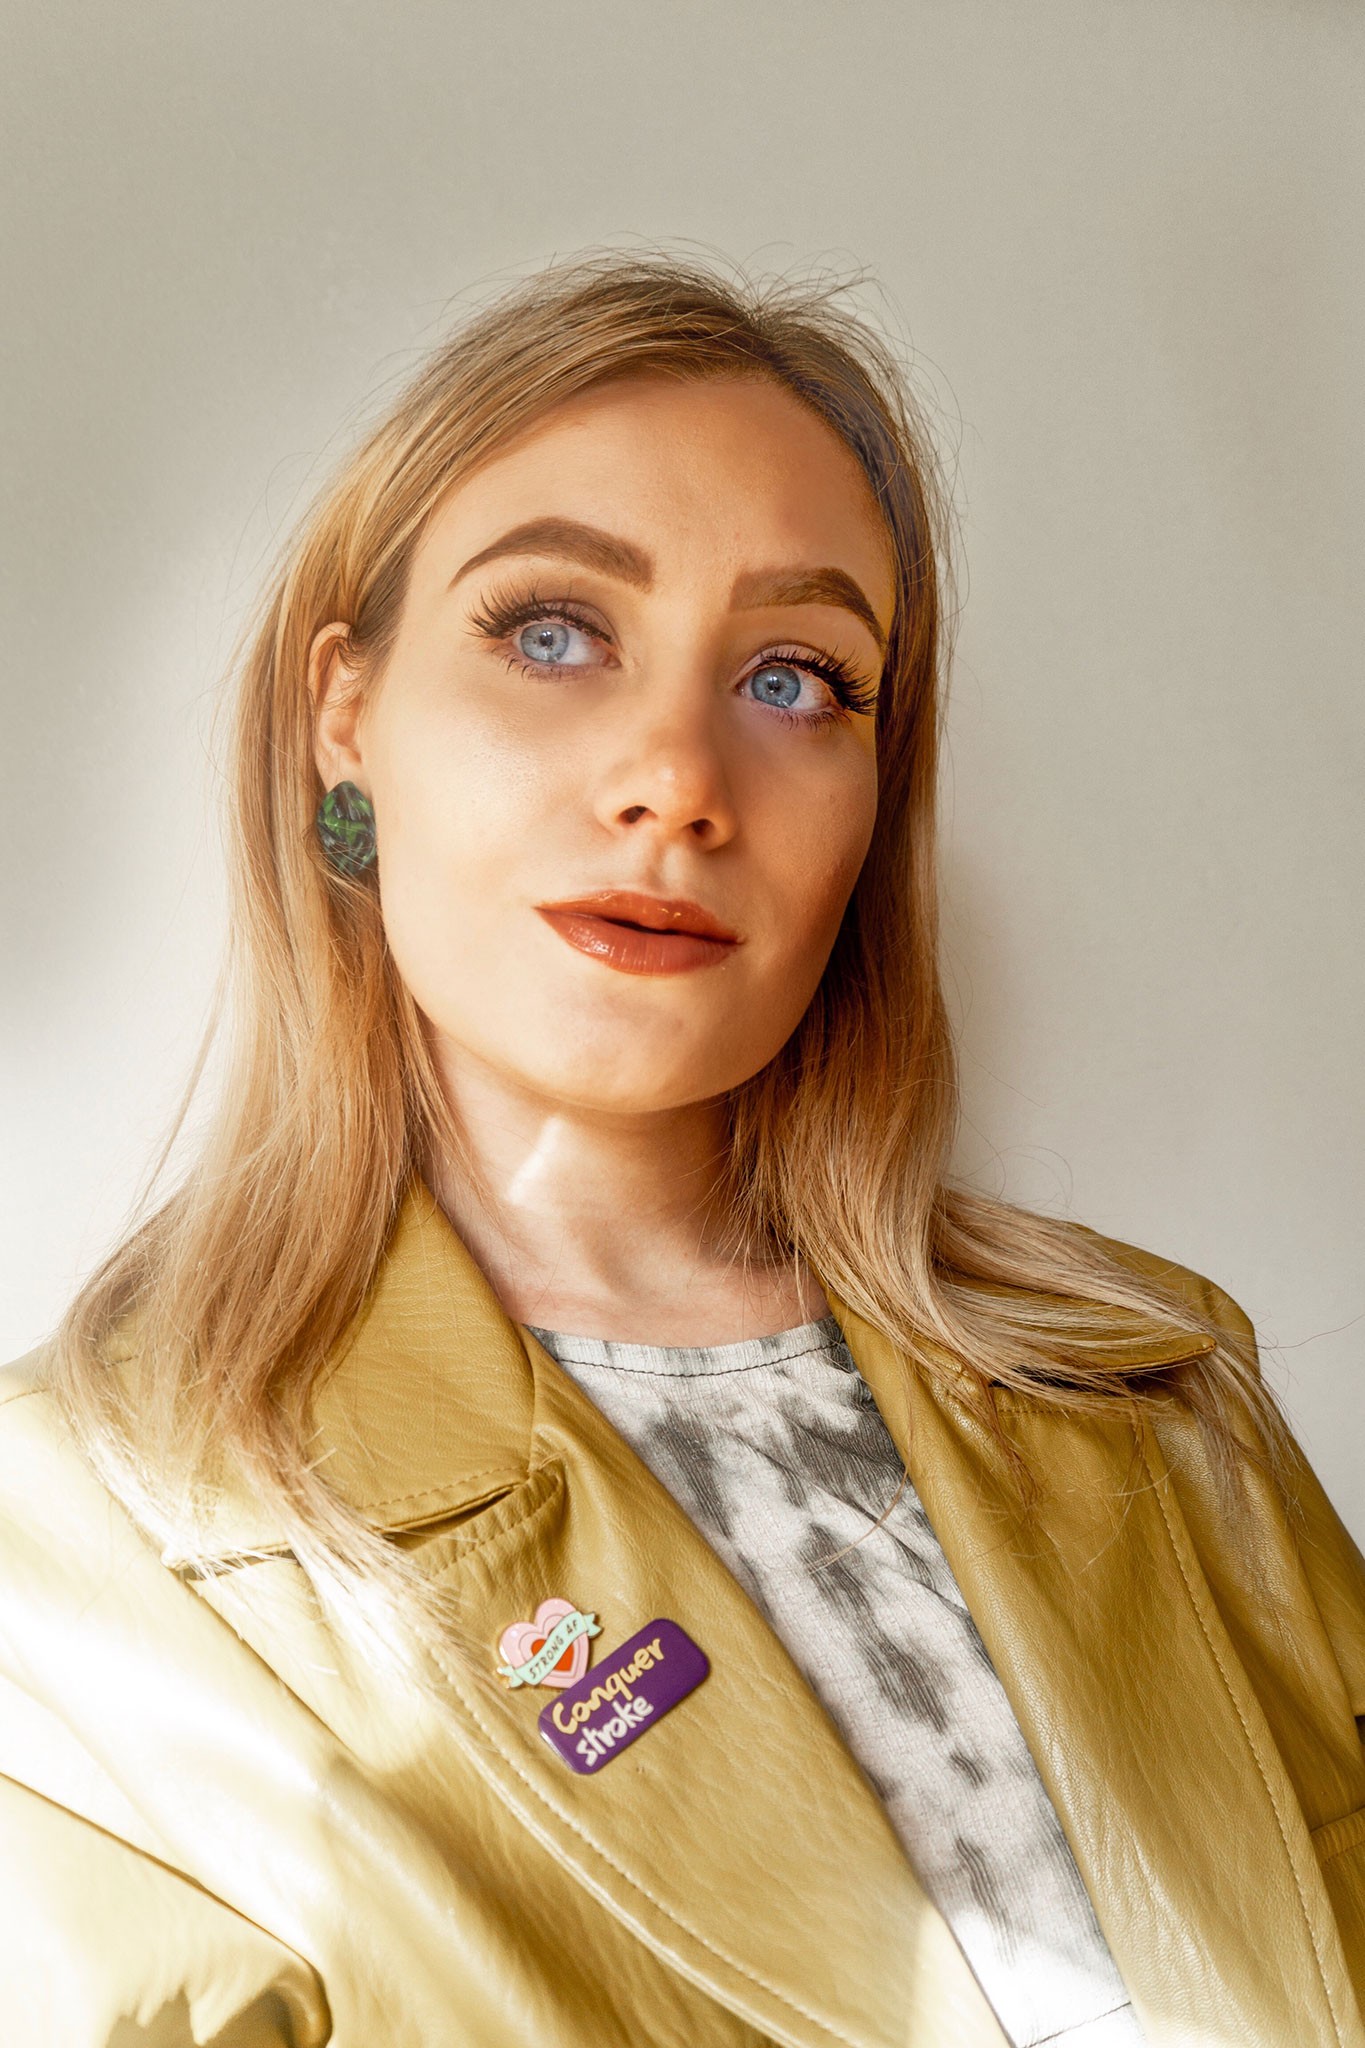 girl looking on in thought wearing conquer stroke and strong af pin badge